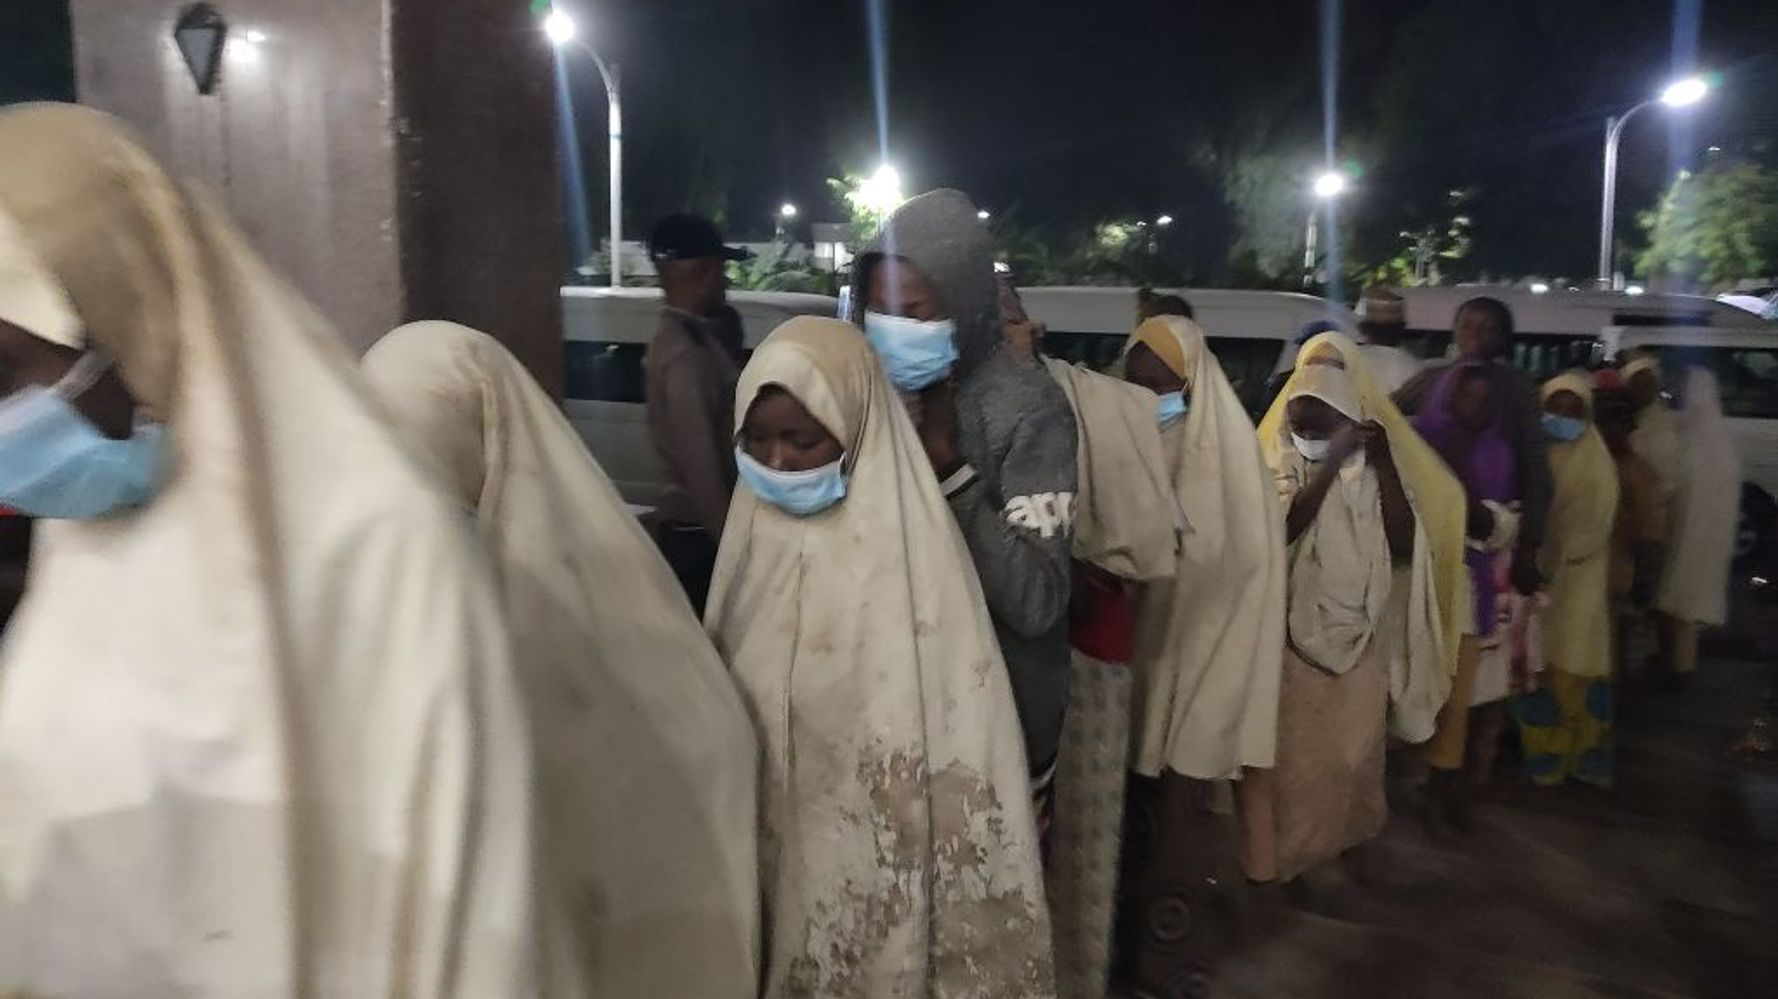 All kidnapped Nigerian schoolgirls released by gunmen in Zamfara state